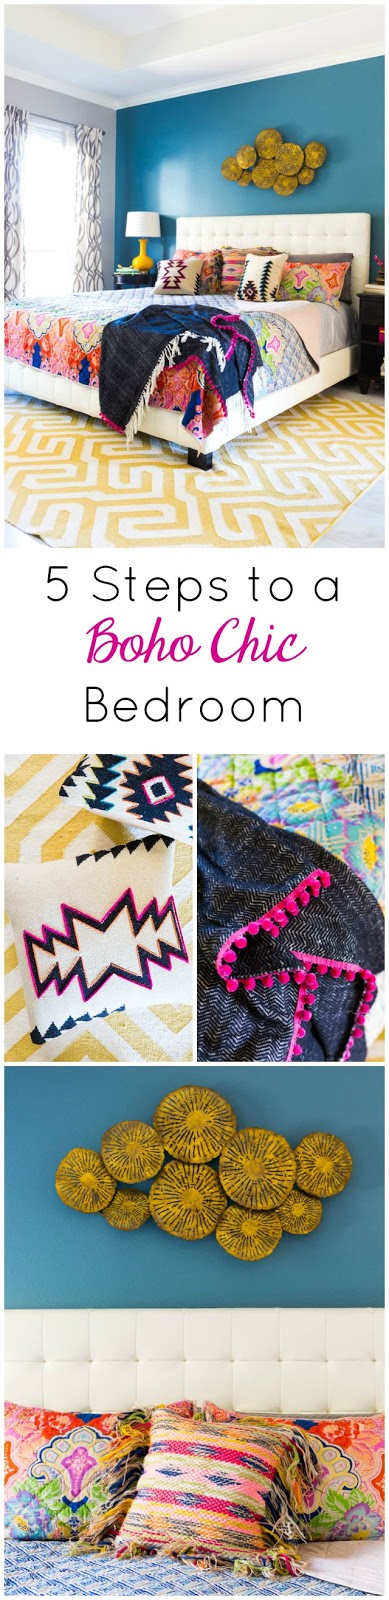 Ideas for creating a boho chic bedroom design!